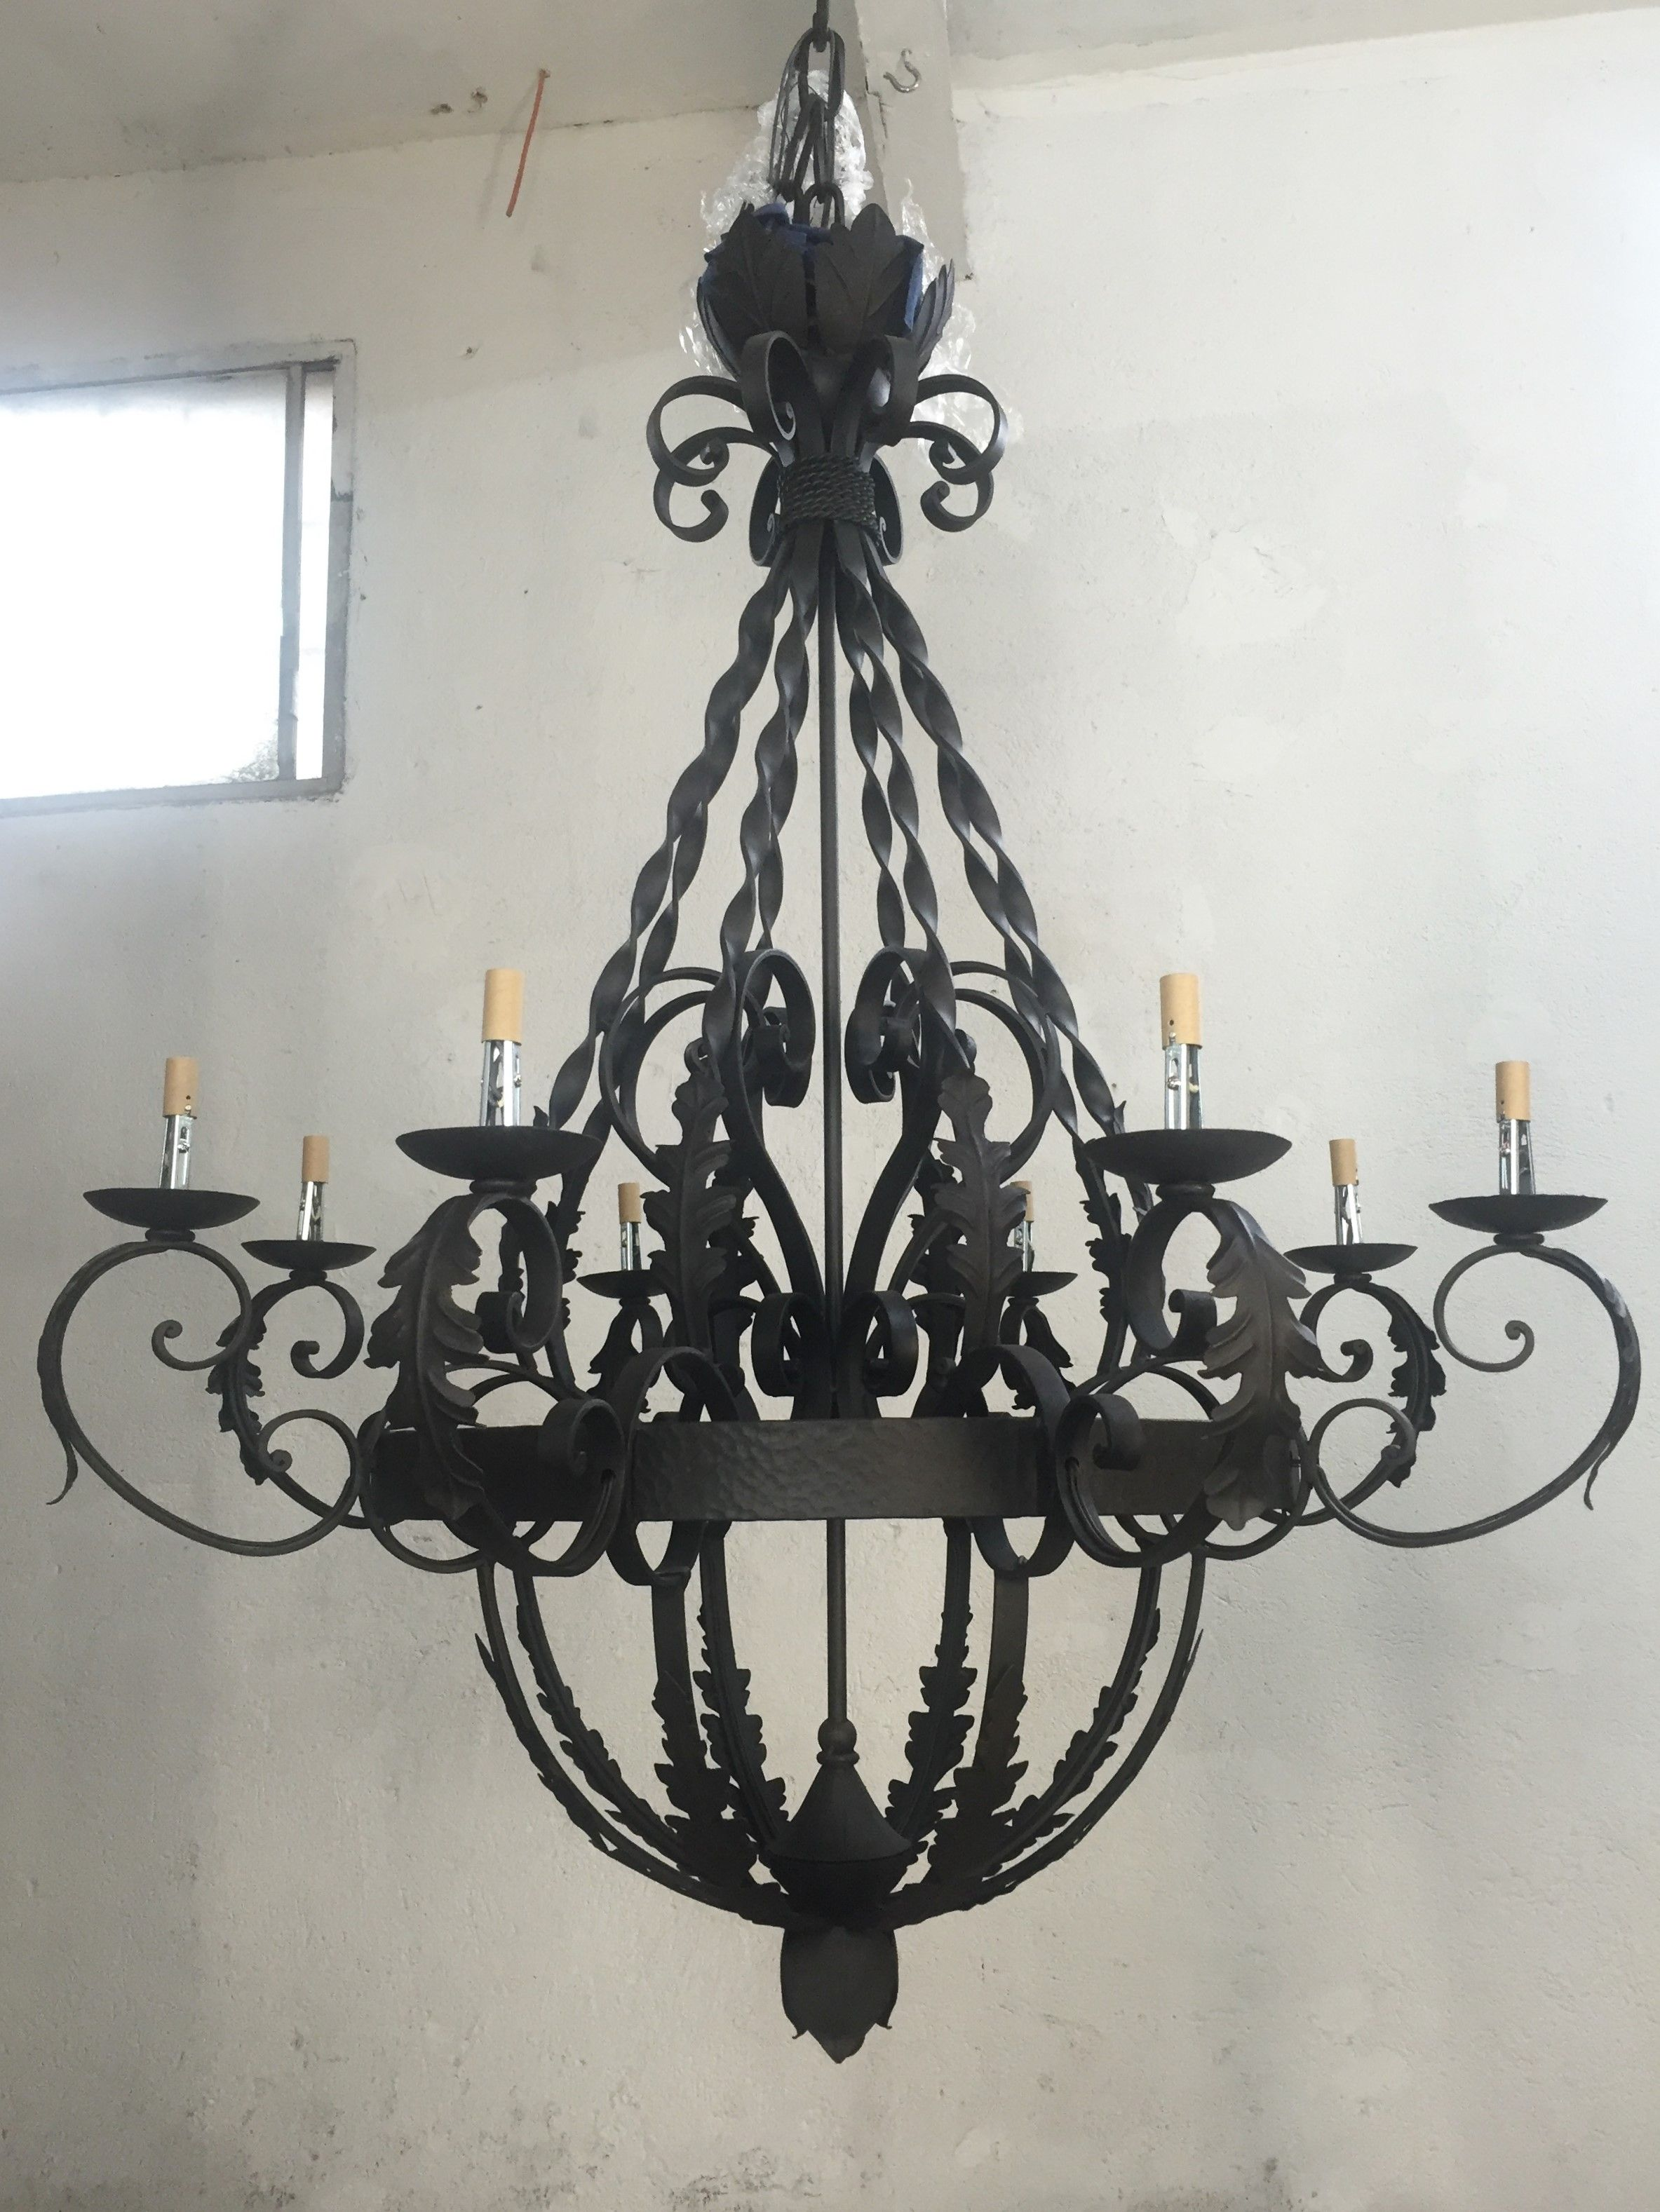 Hand forged iron custom chandelier by haciendalights iron hand forged iron custom chandelier by haciendalights arubaitofo Image collections